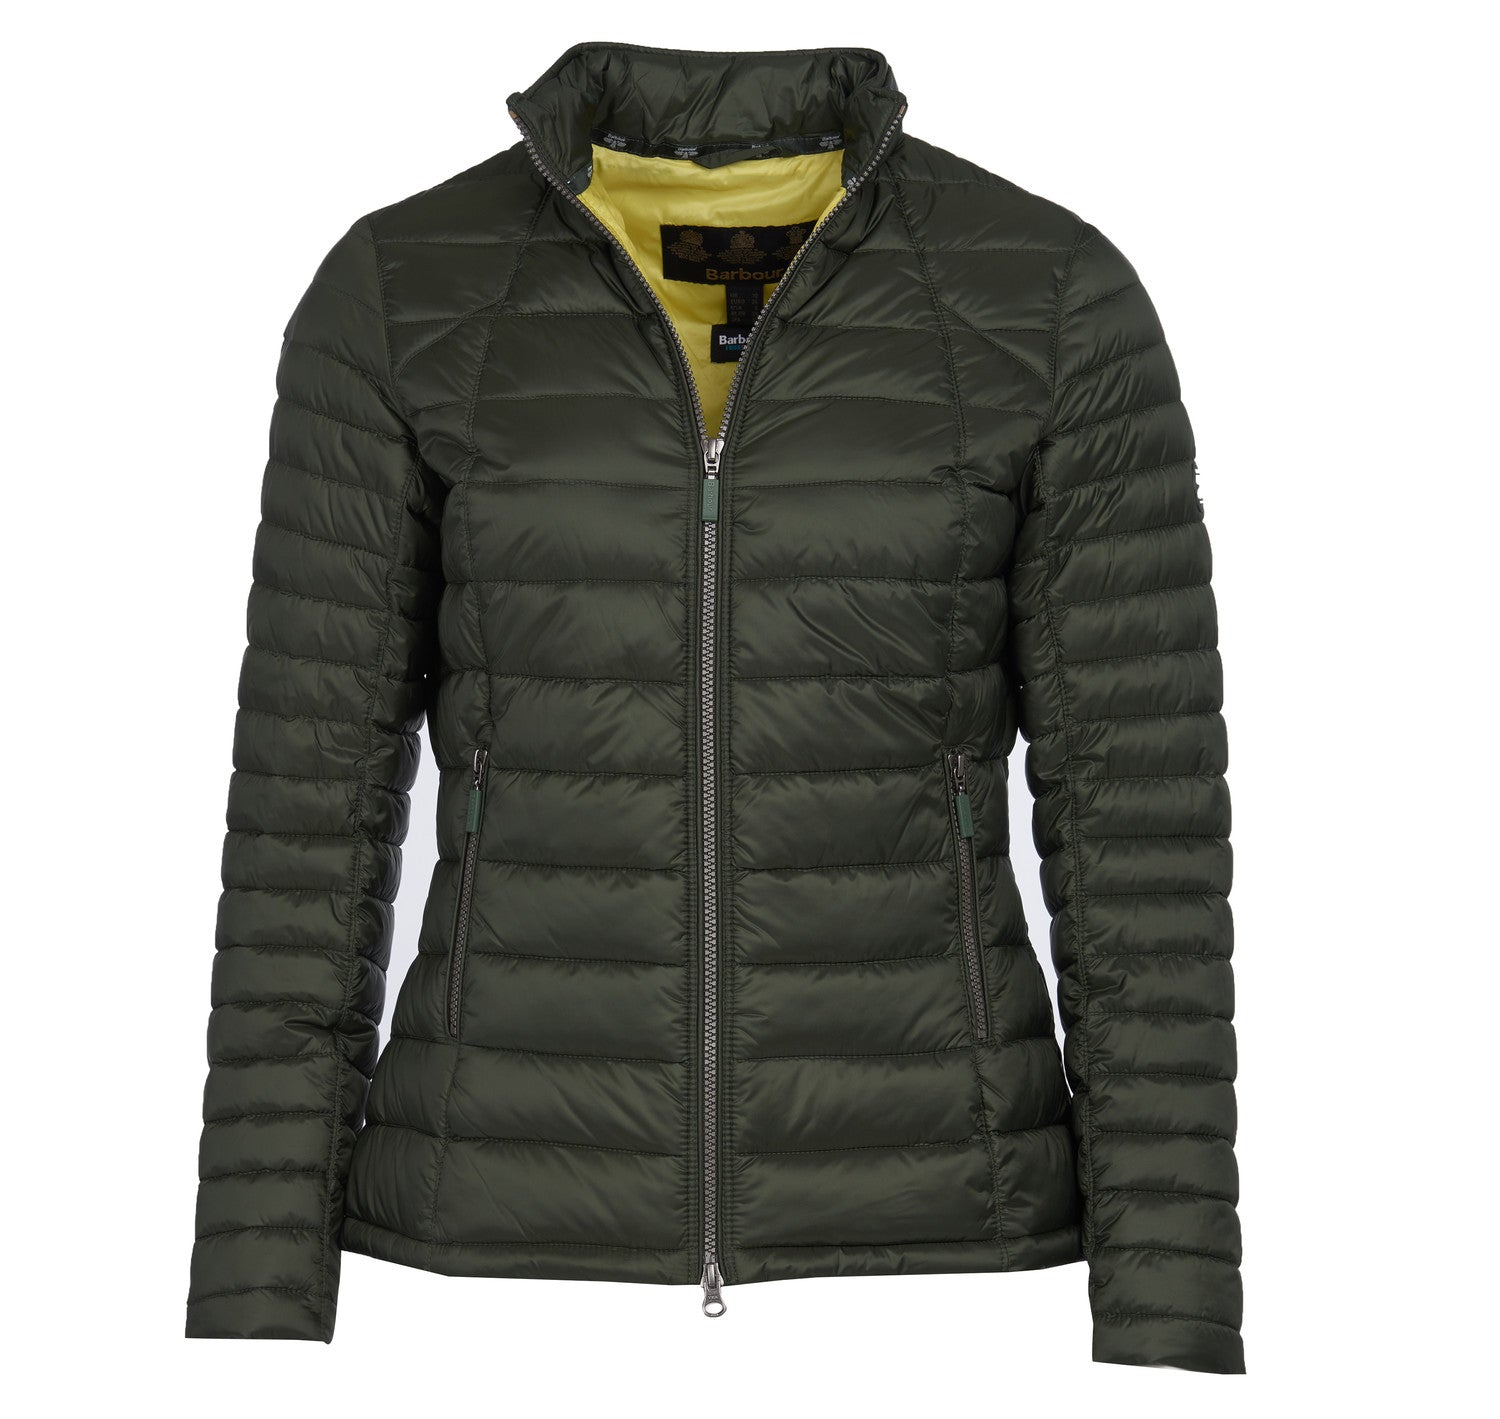 Barbour Daisyhill Quilted Jacket for Ladies in Duffle Bag